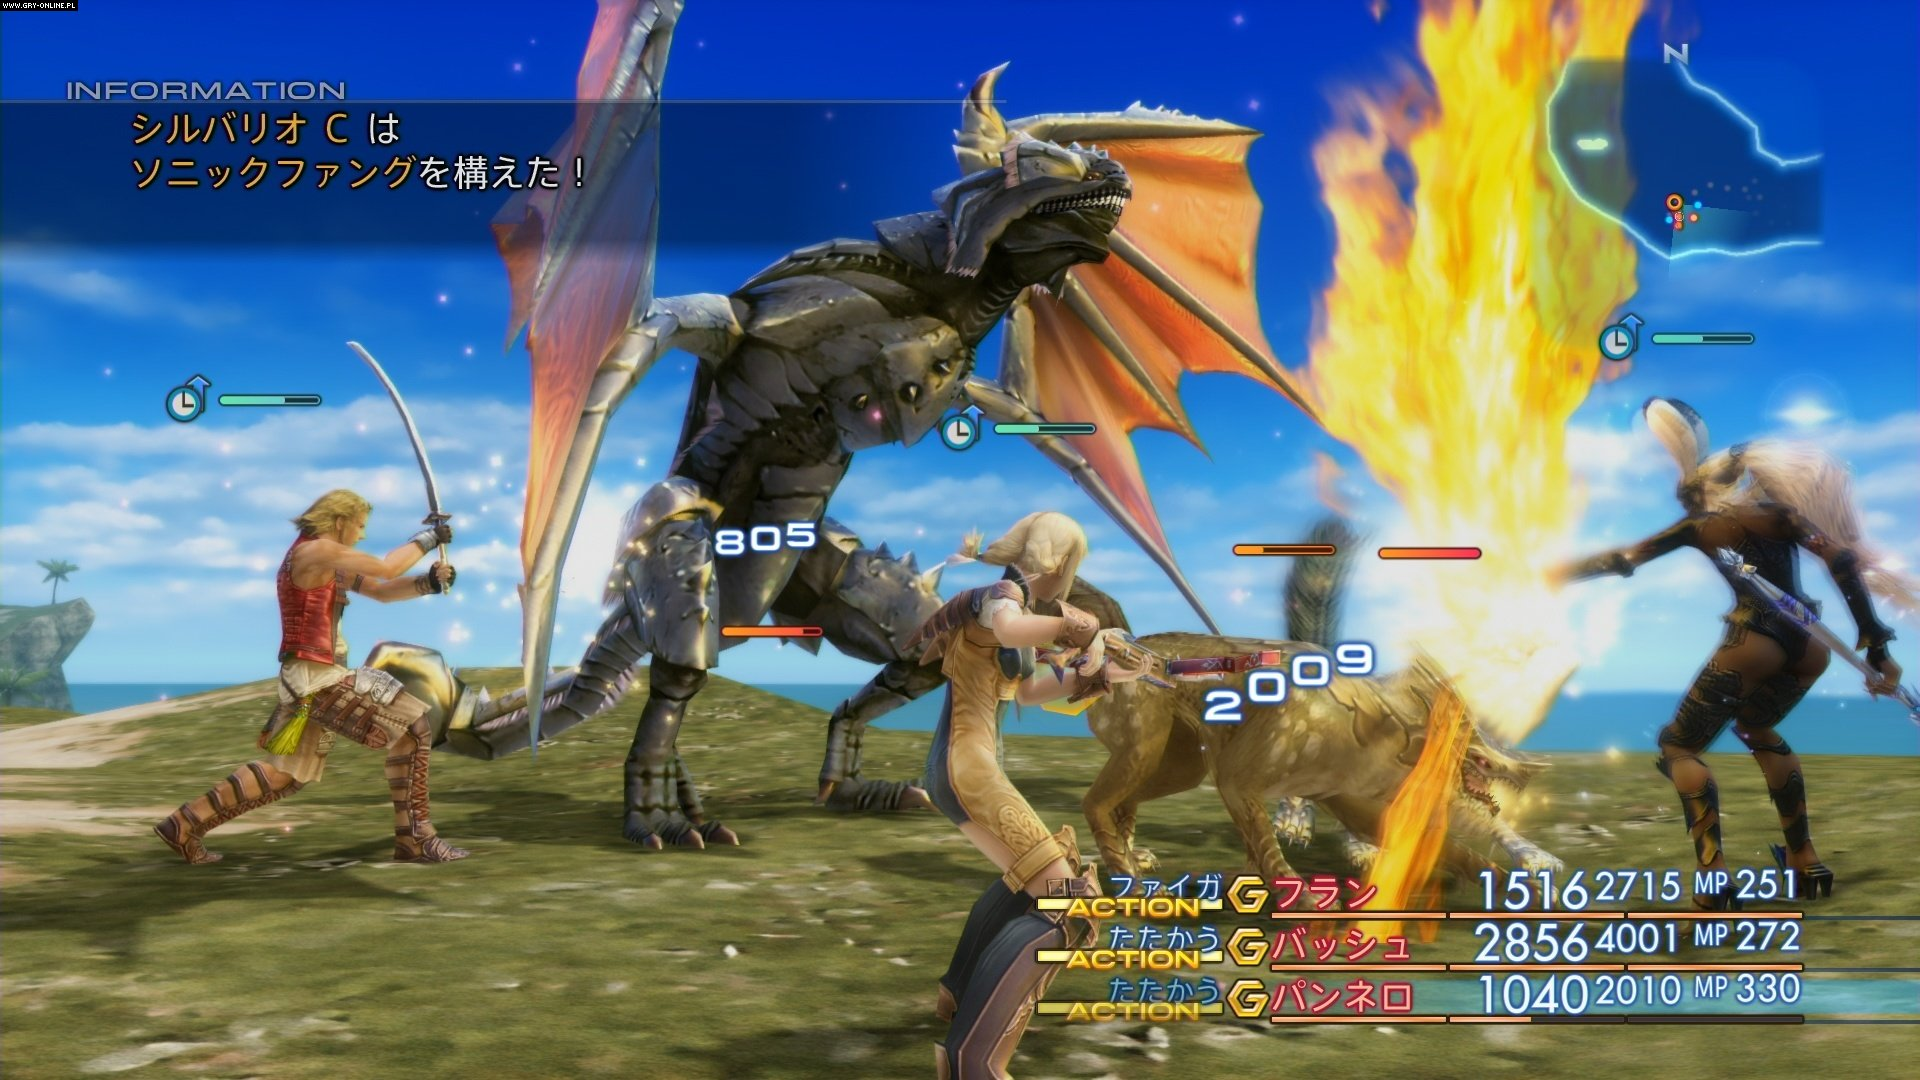 Final Fantasy XII: The Zodiac Age PS4 Gry Screen 5/62, Square-Enix, Square-Enix / Eidos